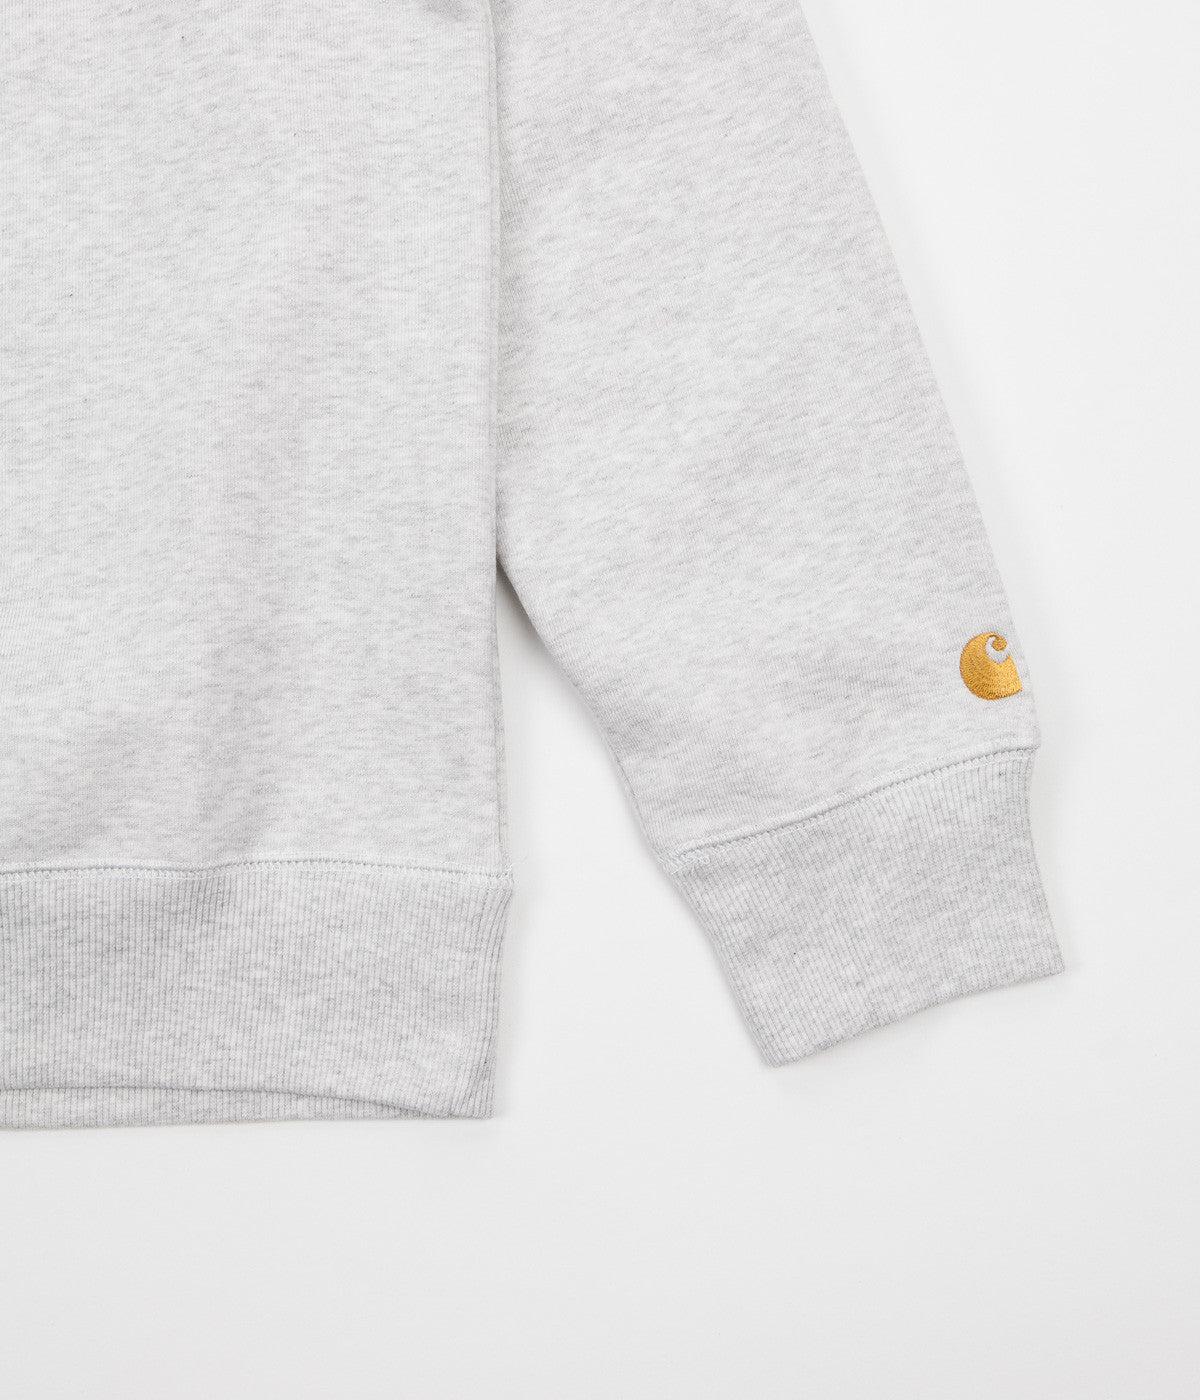 Carhartt Chase Crewneck Sweatshirt - Ash Heather / Gold